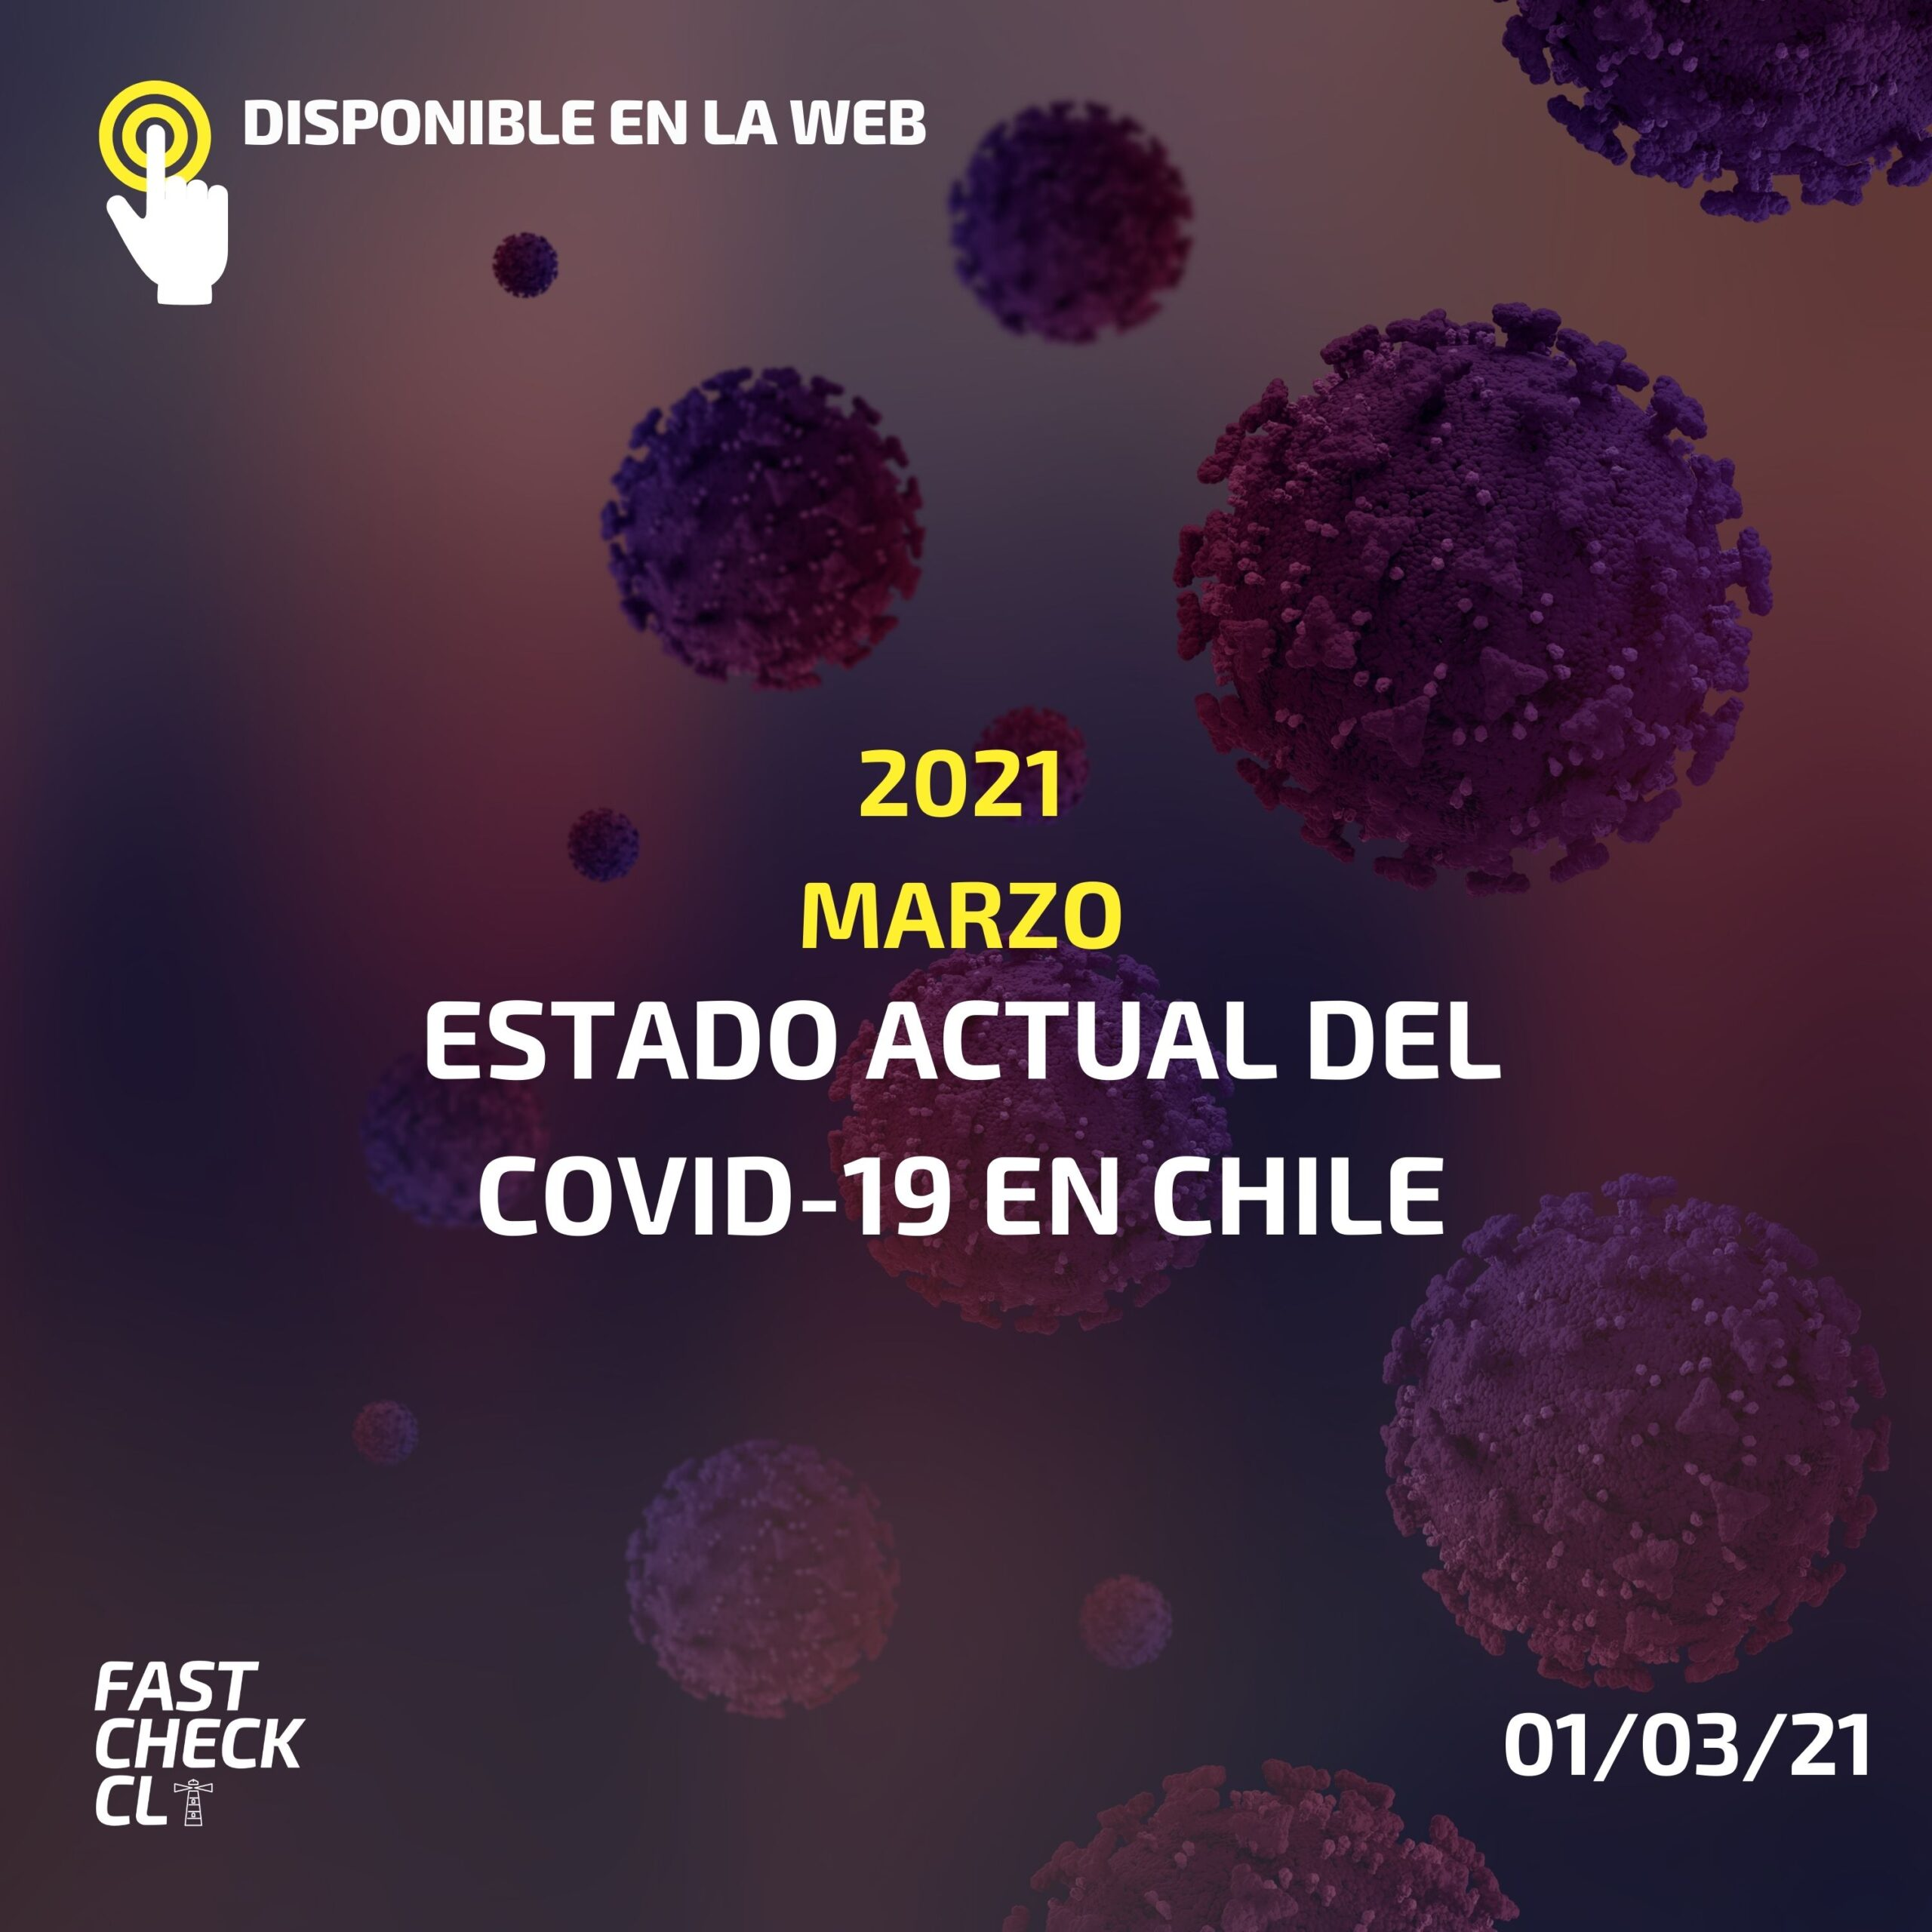 Estado actual del Covid-19 en Chile: 1 de marzo de 2021